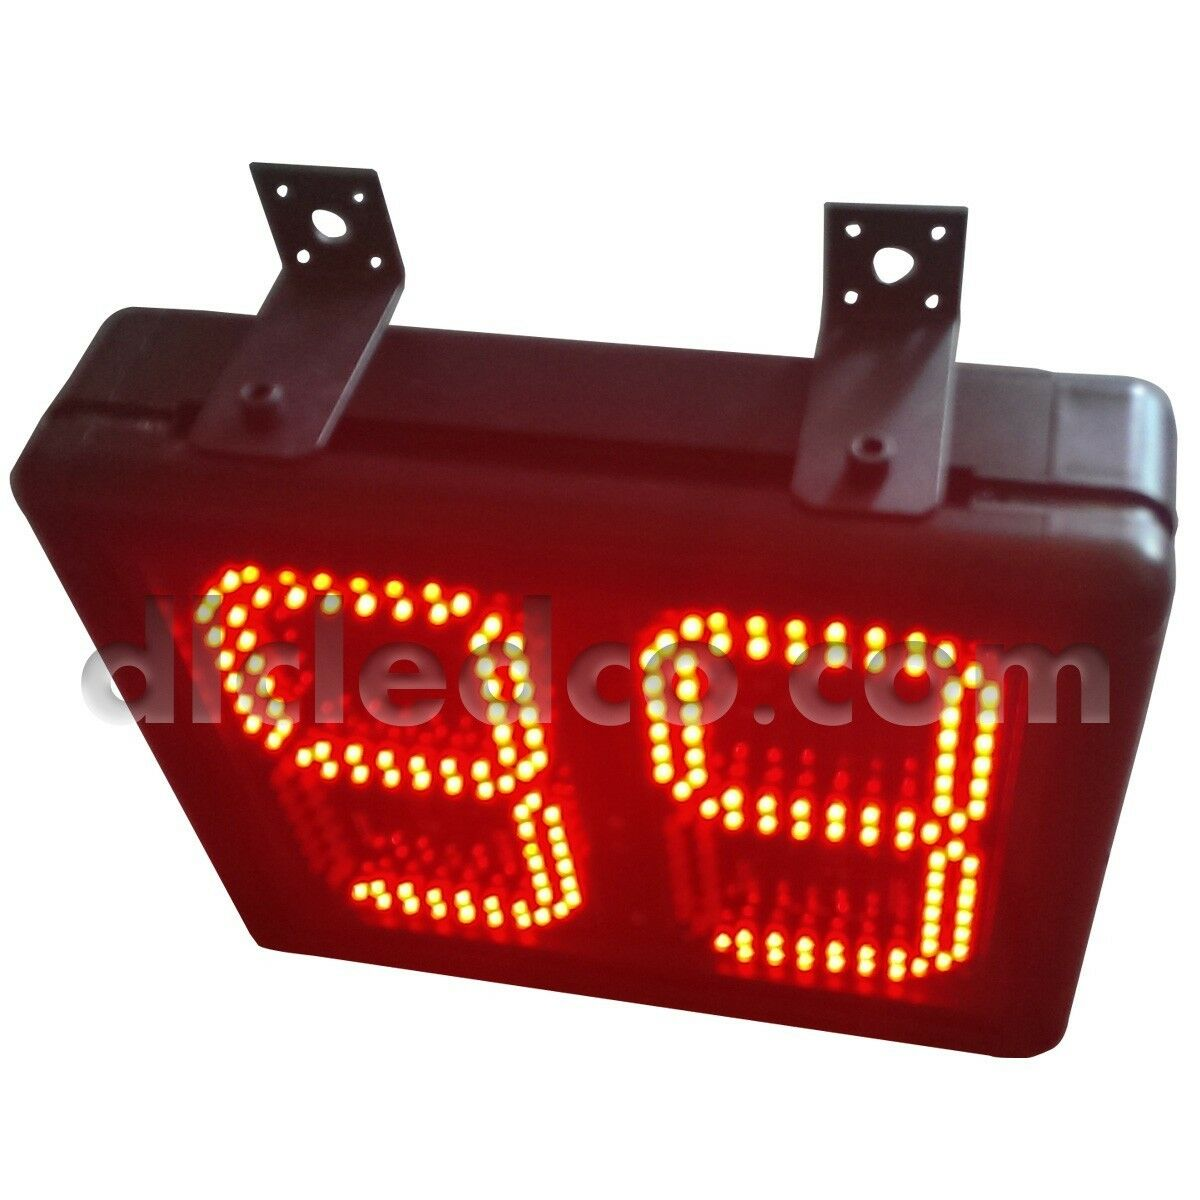 Seconds Countdown Timer Max 99 Secds Countdown up Remote Operation 8  High Digit